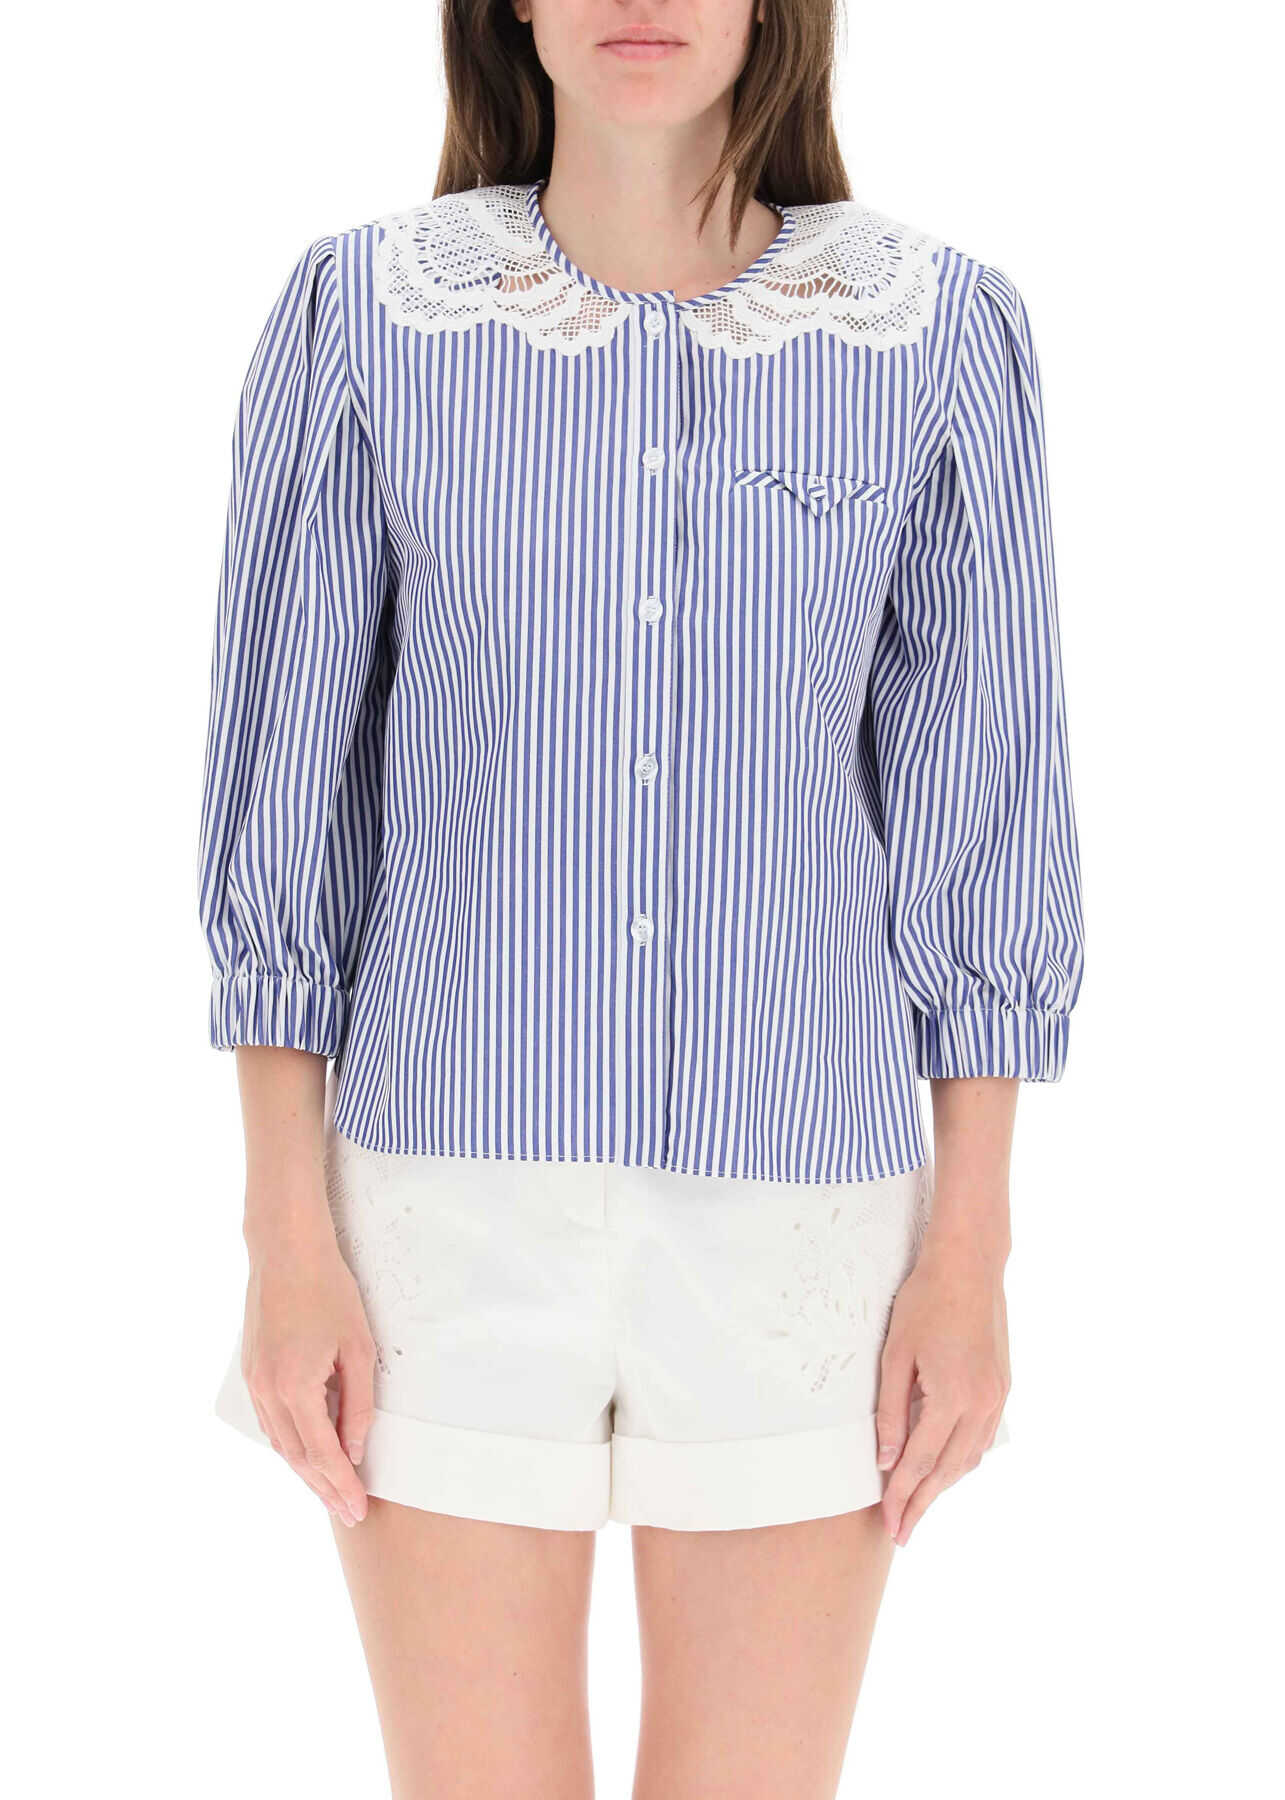 Self-Portrait Embroidered Striped Shirt SS21 045TS MULTICOLOUR image0